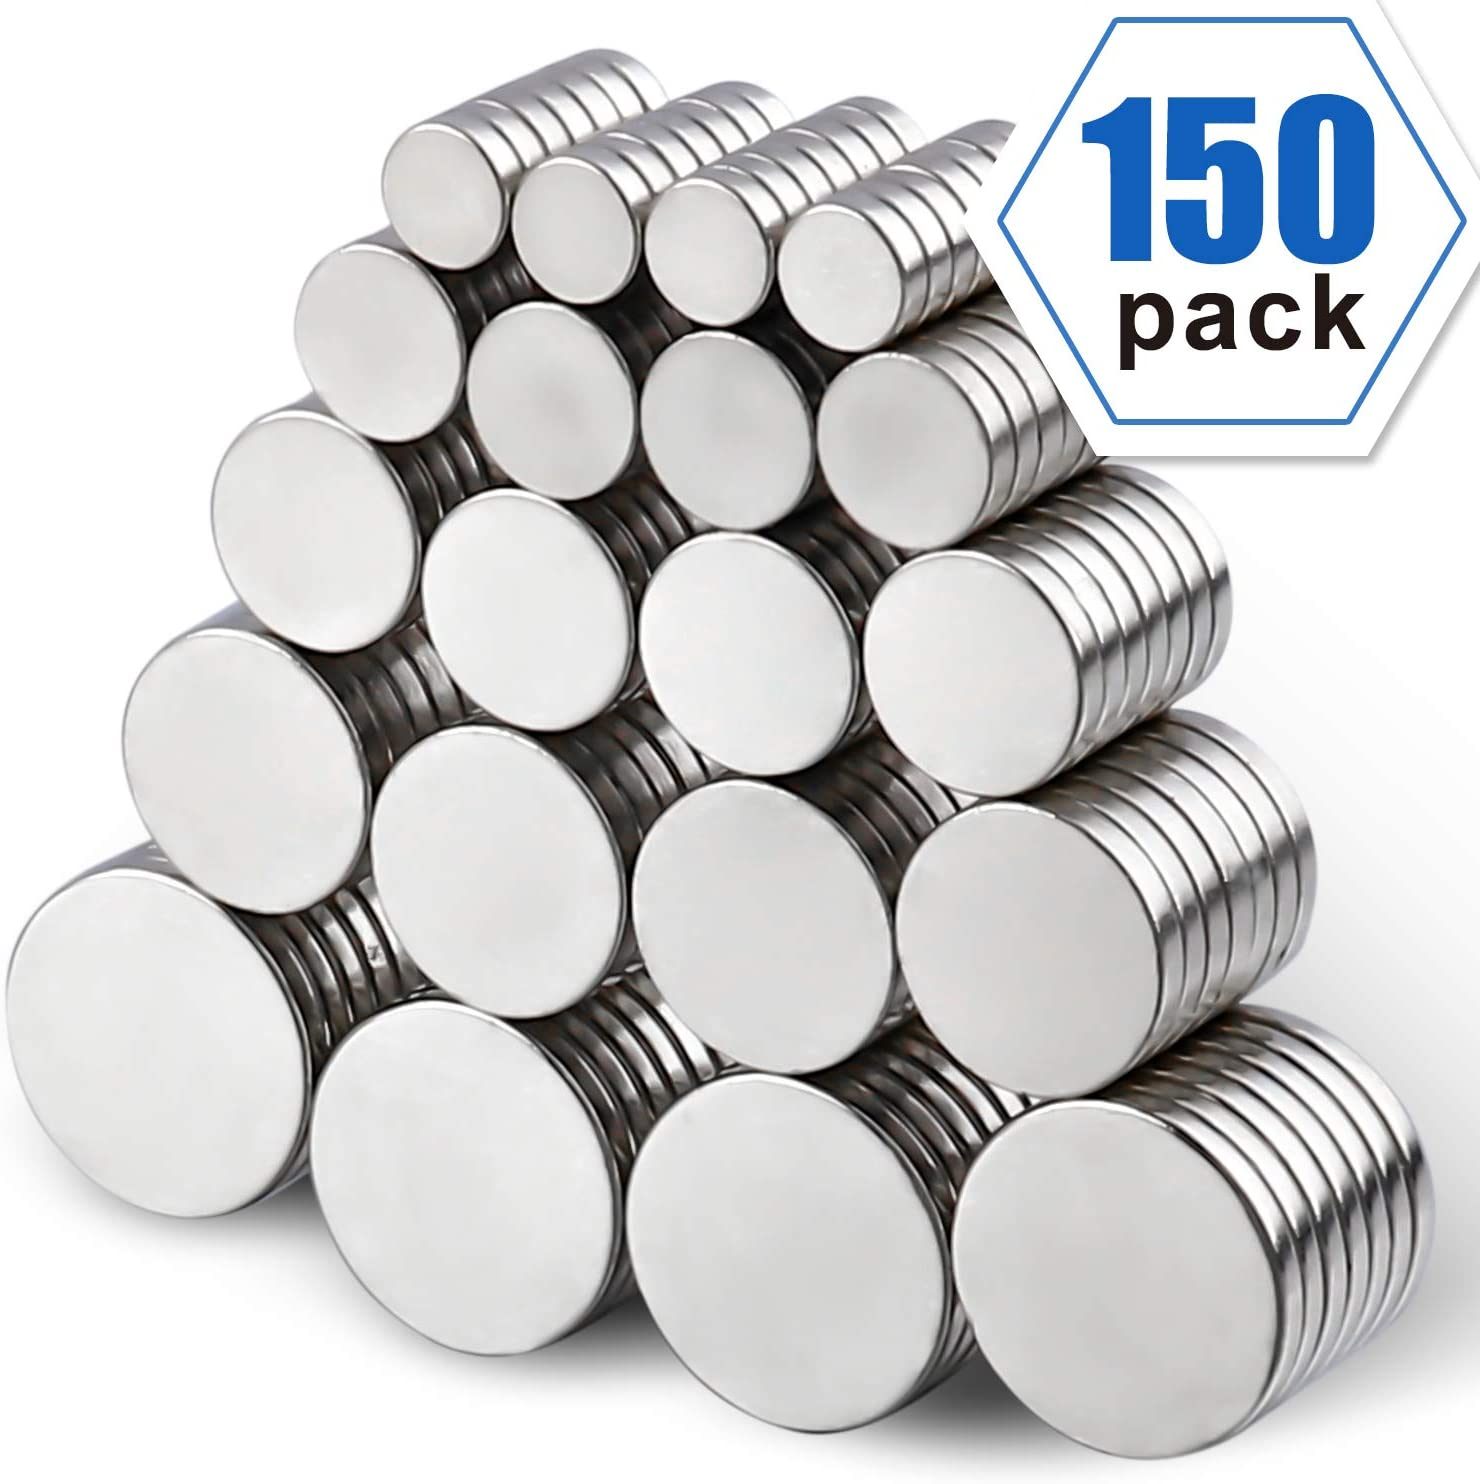 Hobbies Fridge Magnets Whiteboard Magnet Round Ceramic Industrial Ferrite Magnets Crafts and Science Push Pin Magnets LOVIMAG 150pcs Refrigerator Magnets for Office